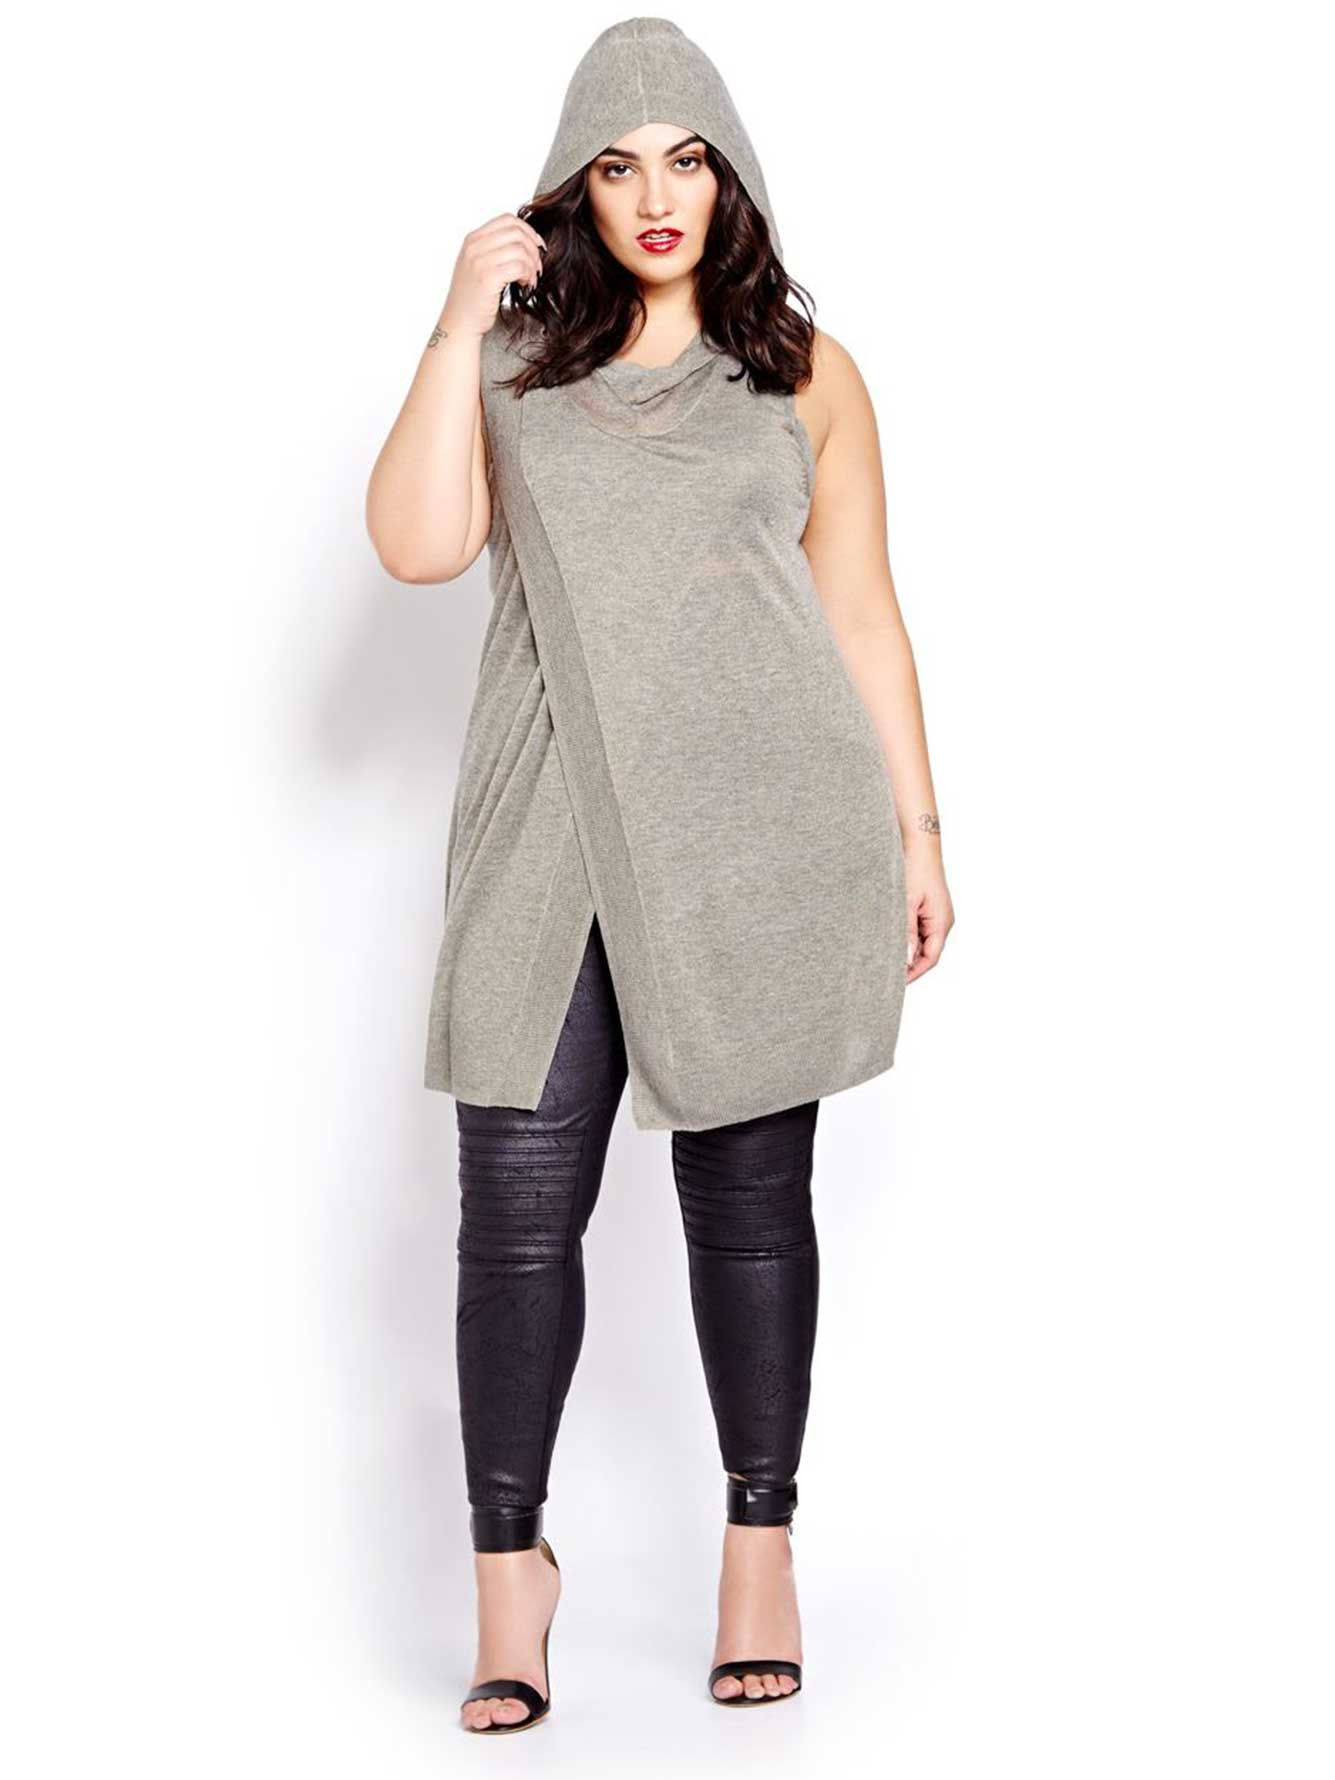 Nadia Aboulhosn Hooded Sleeveless Sweater for L&L